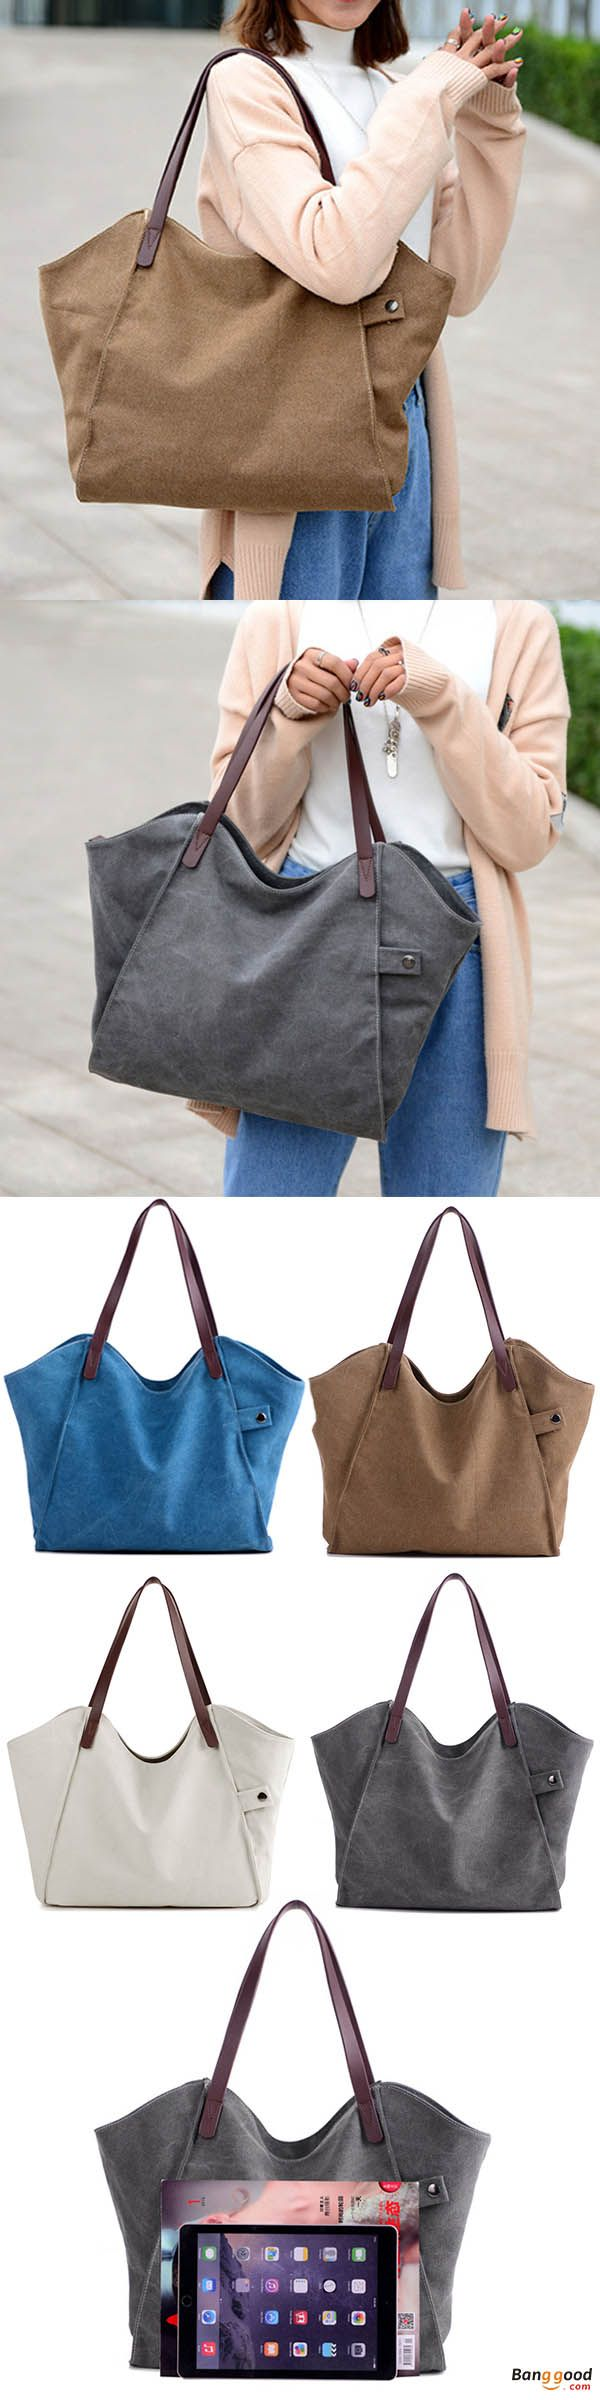 US$24.89 + Free shipping. Women Durable Thicker Canvas Handbag Light Casual Large Capacity Shoulder Bag. Material: canvas.  4 Colors to Match Your Style >>> To view further, visit now.